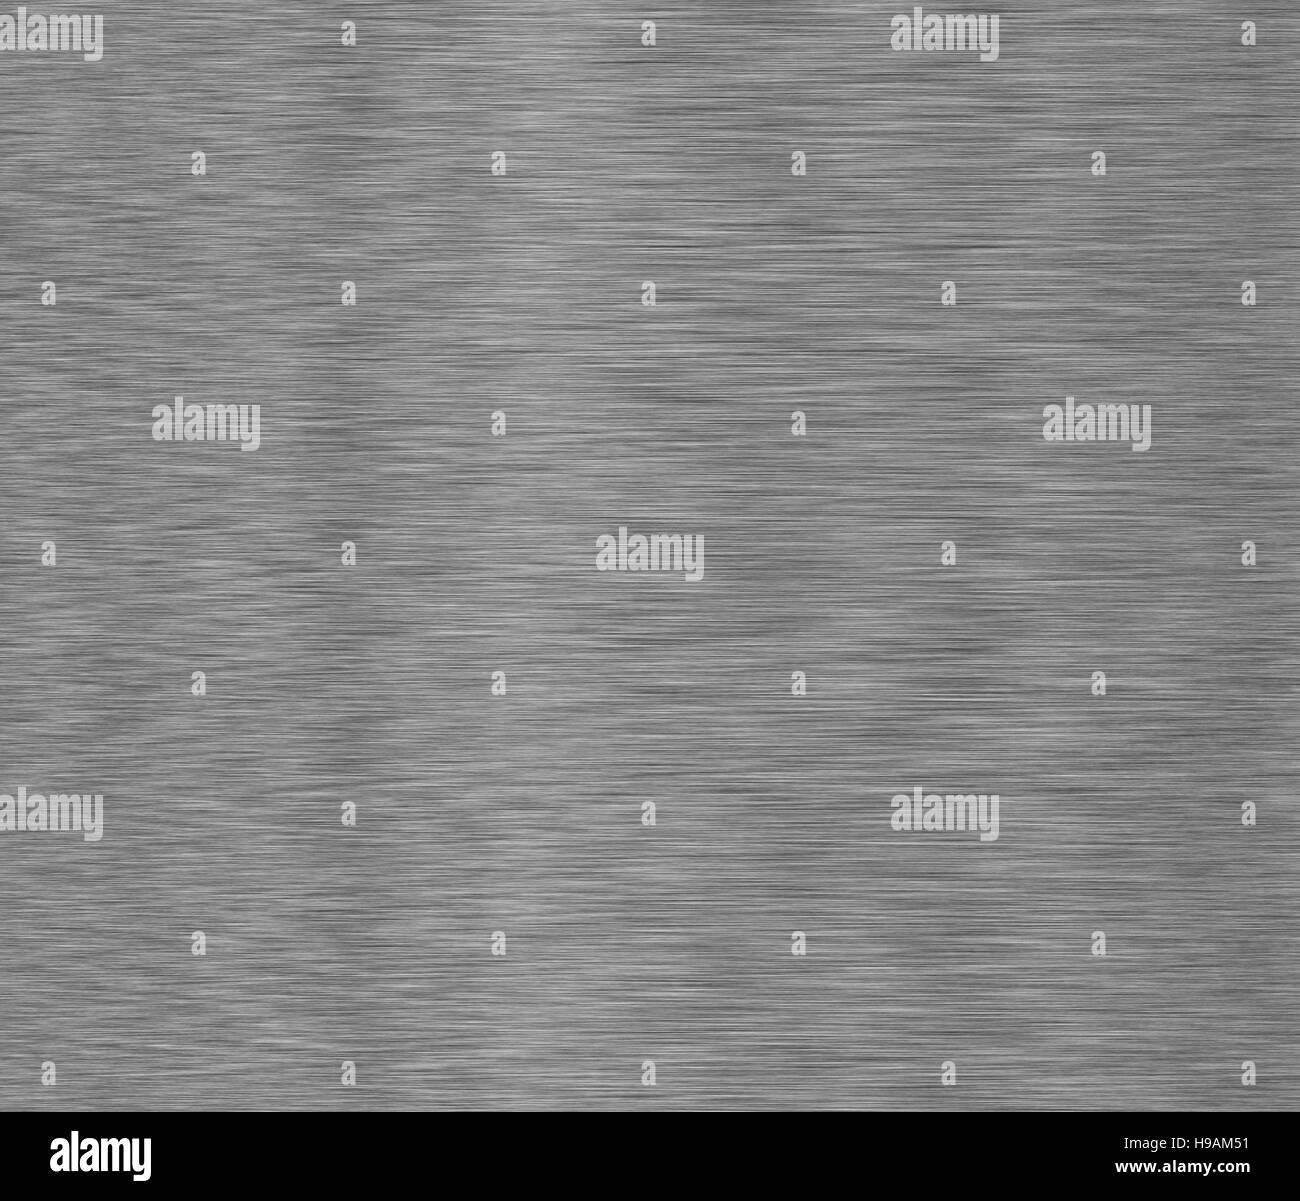 Linear brushed metal texture. Stainless steel background with vignette - Stock Image